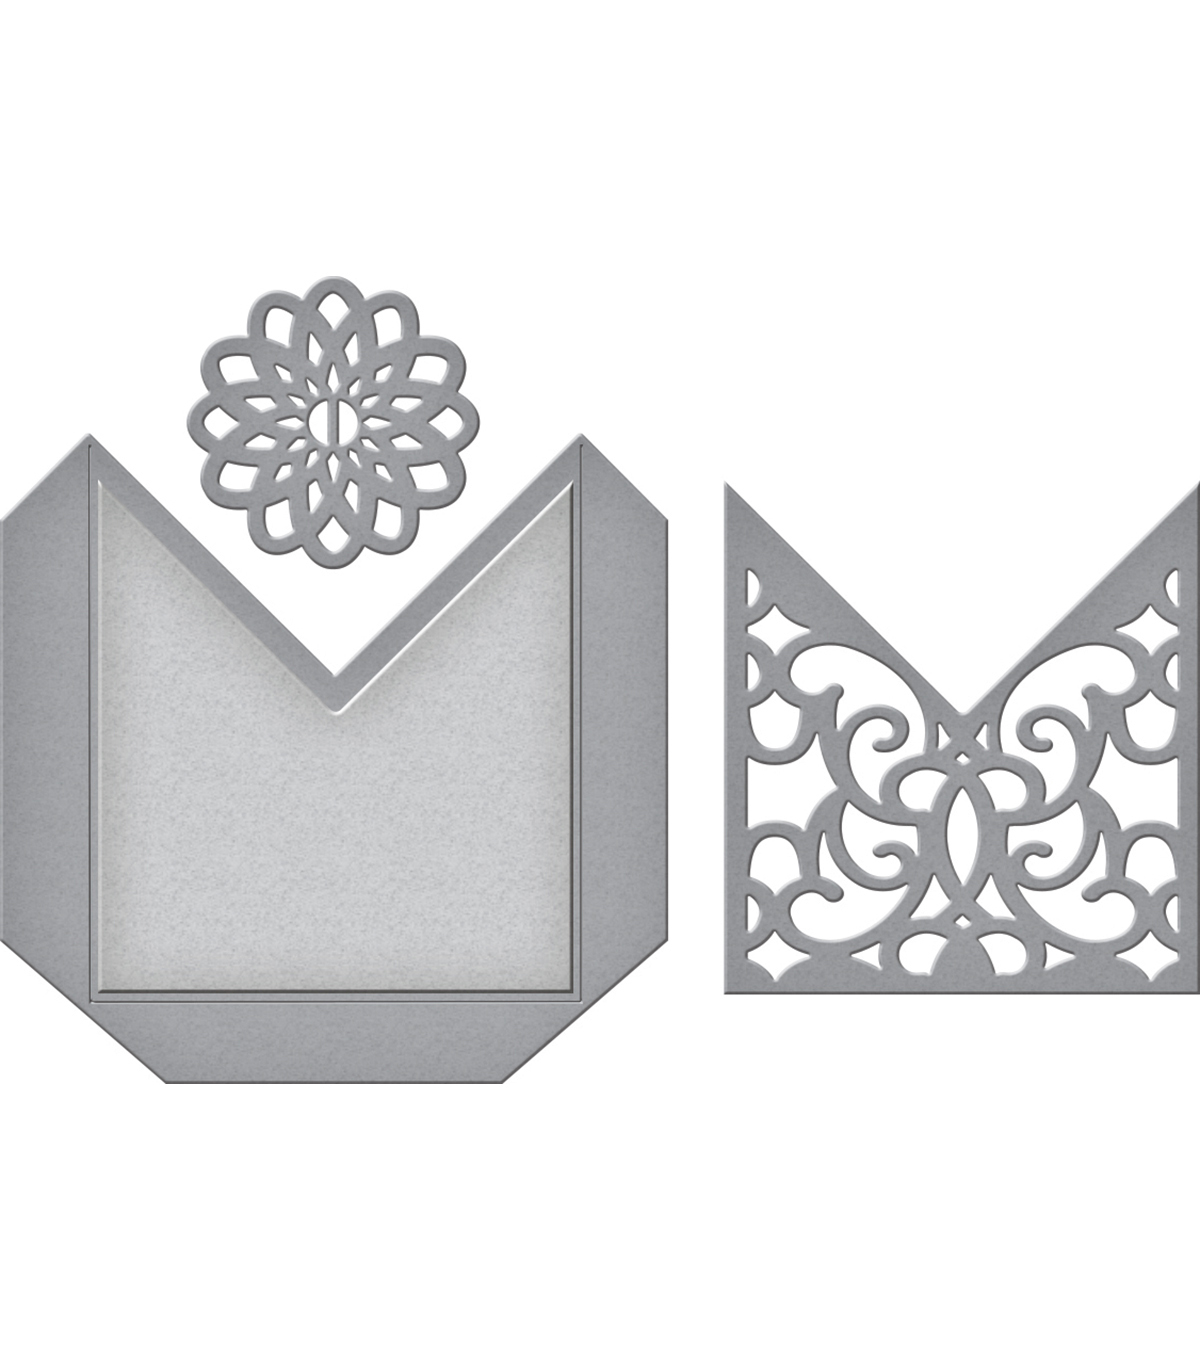 Spellbinders Shapeabilities Etched Die-Filigree Pocket